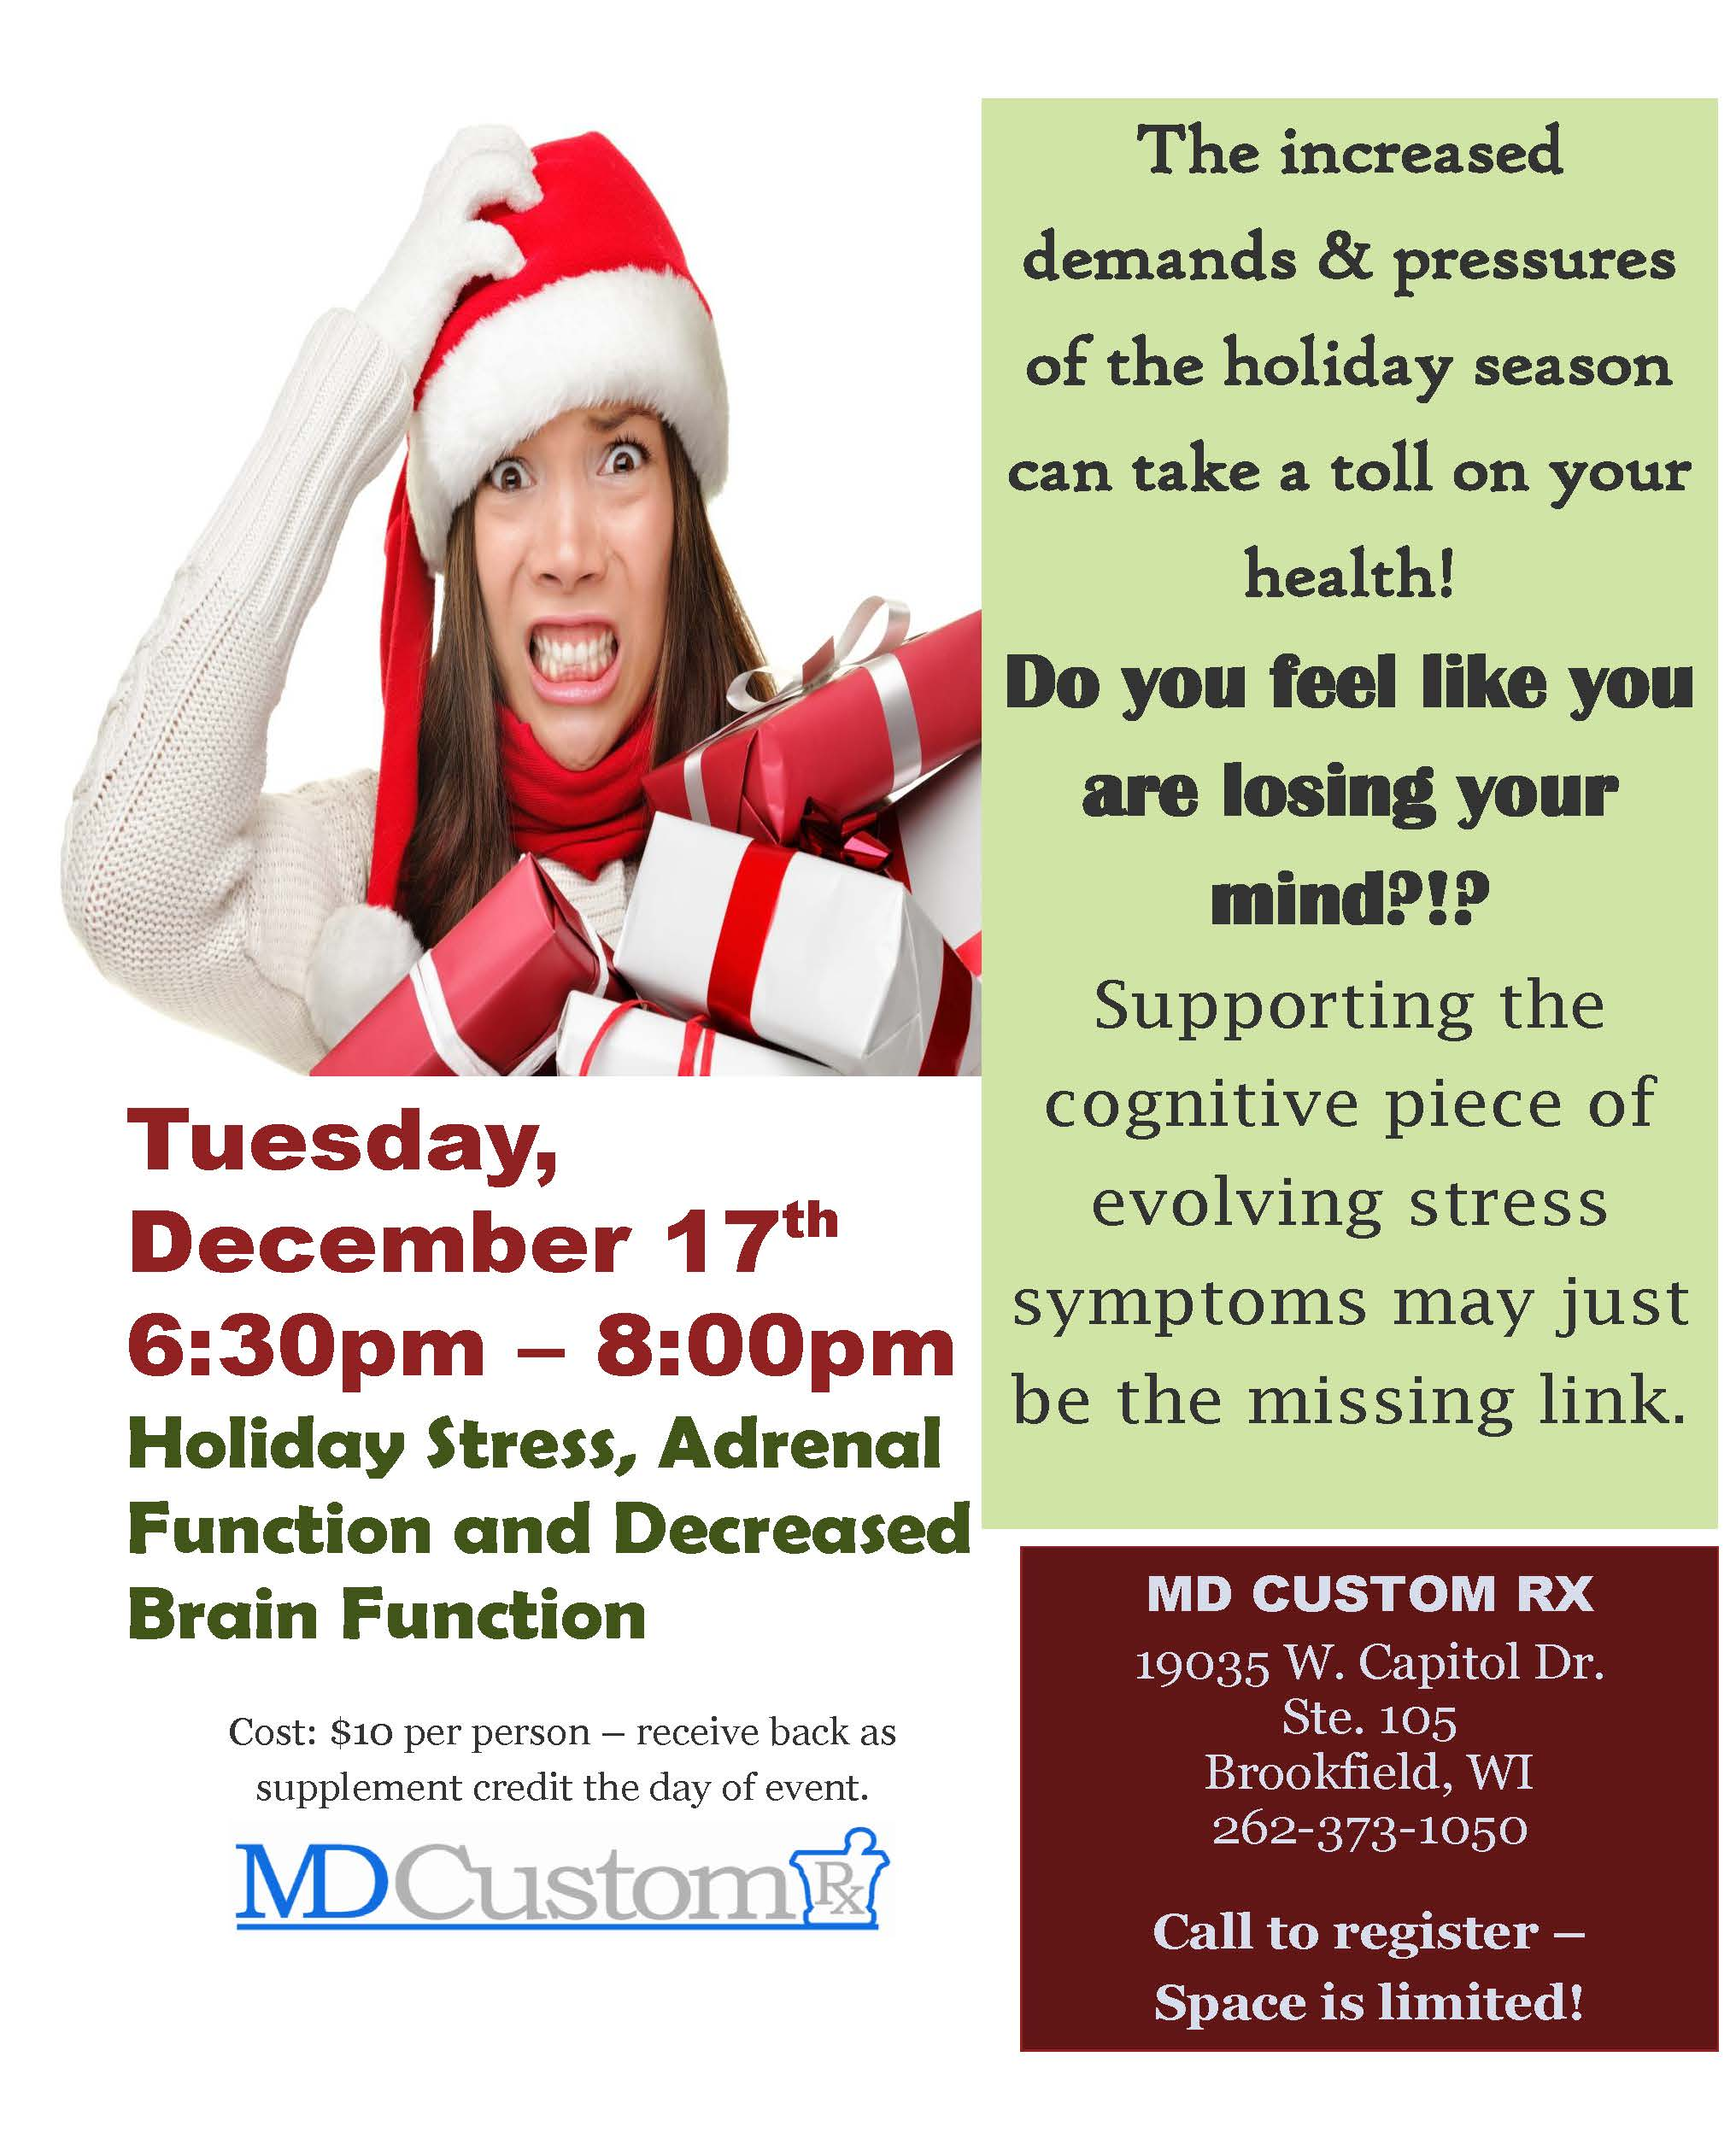 Holiday Stress, Adrenal Function and Decreased Brain Function